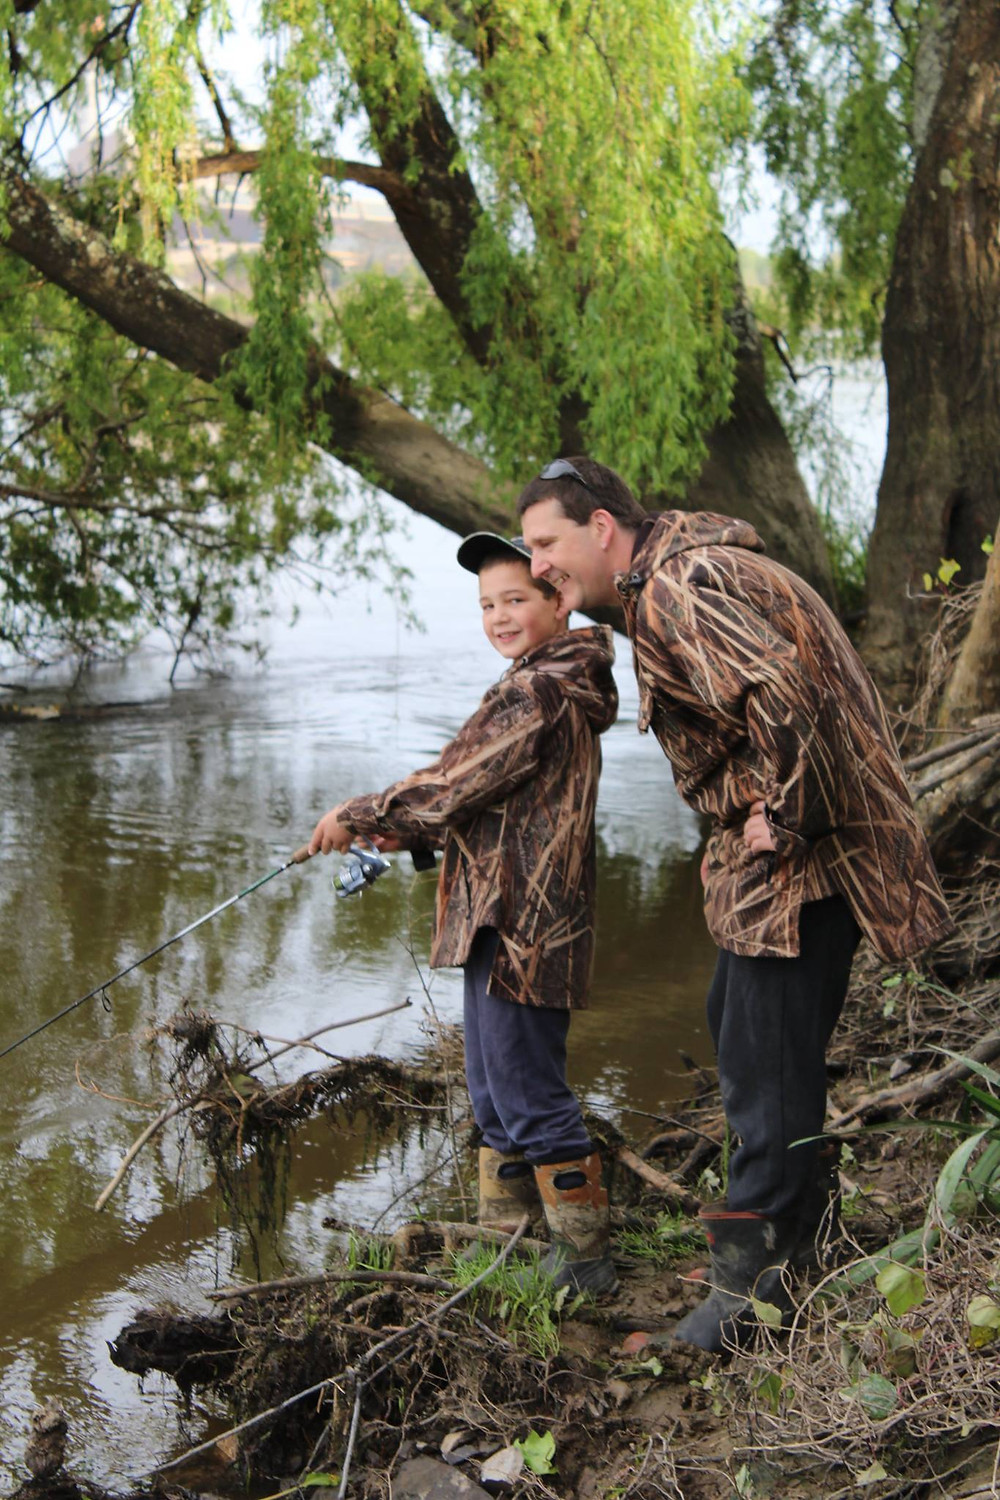 Dylan Farrar fishing with Dad Steven. Image supplied by Michael Lynch